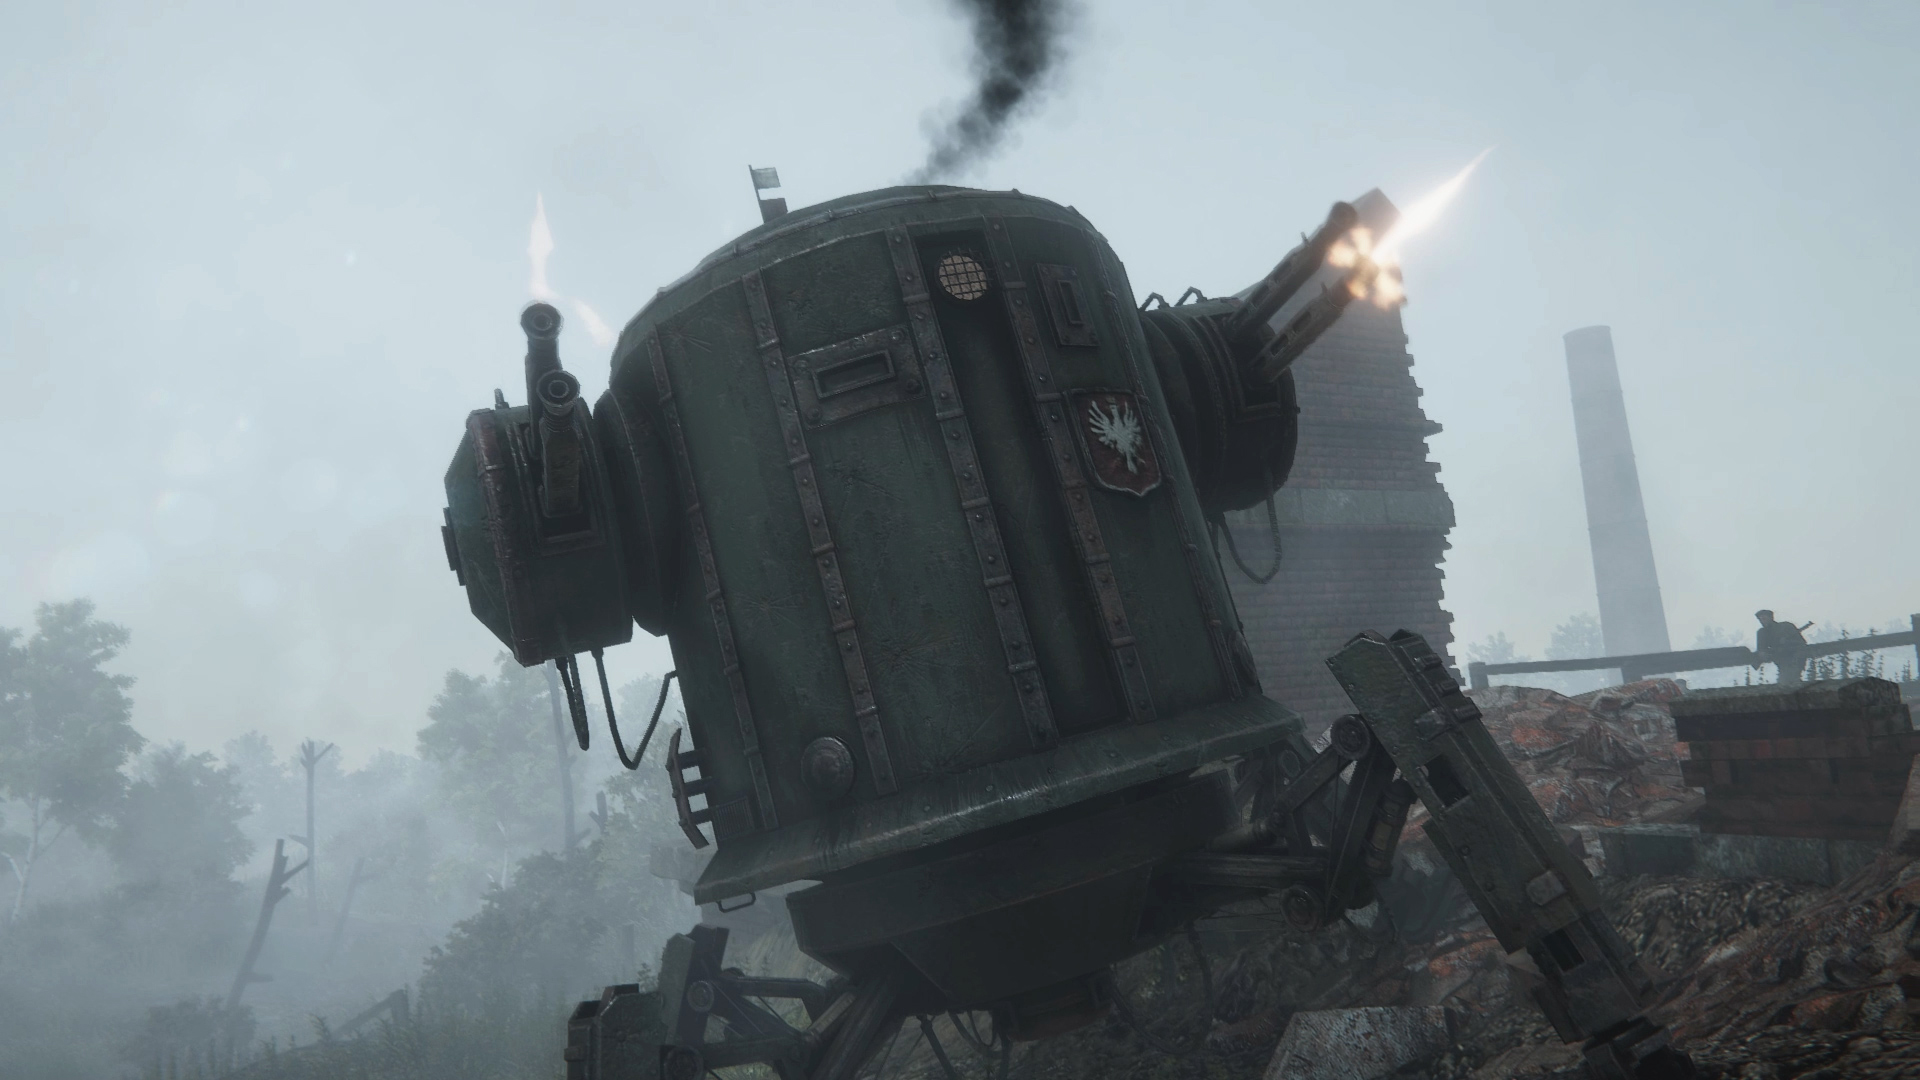 Fight mechs and bears in Iron Harvest's open beta